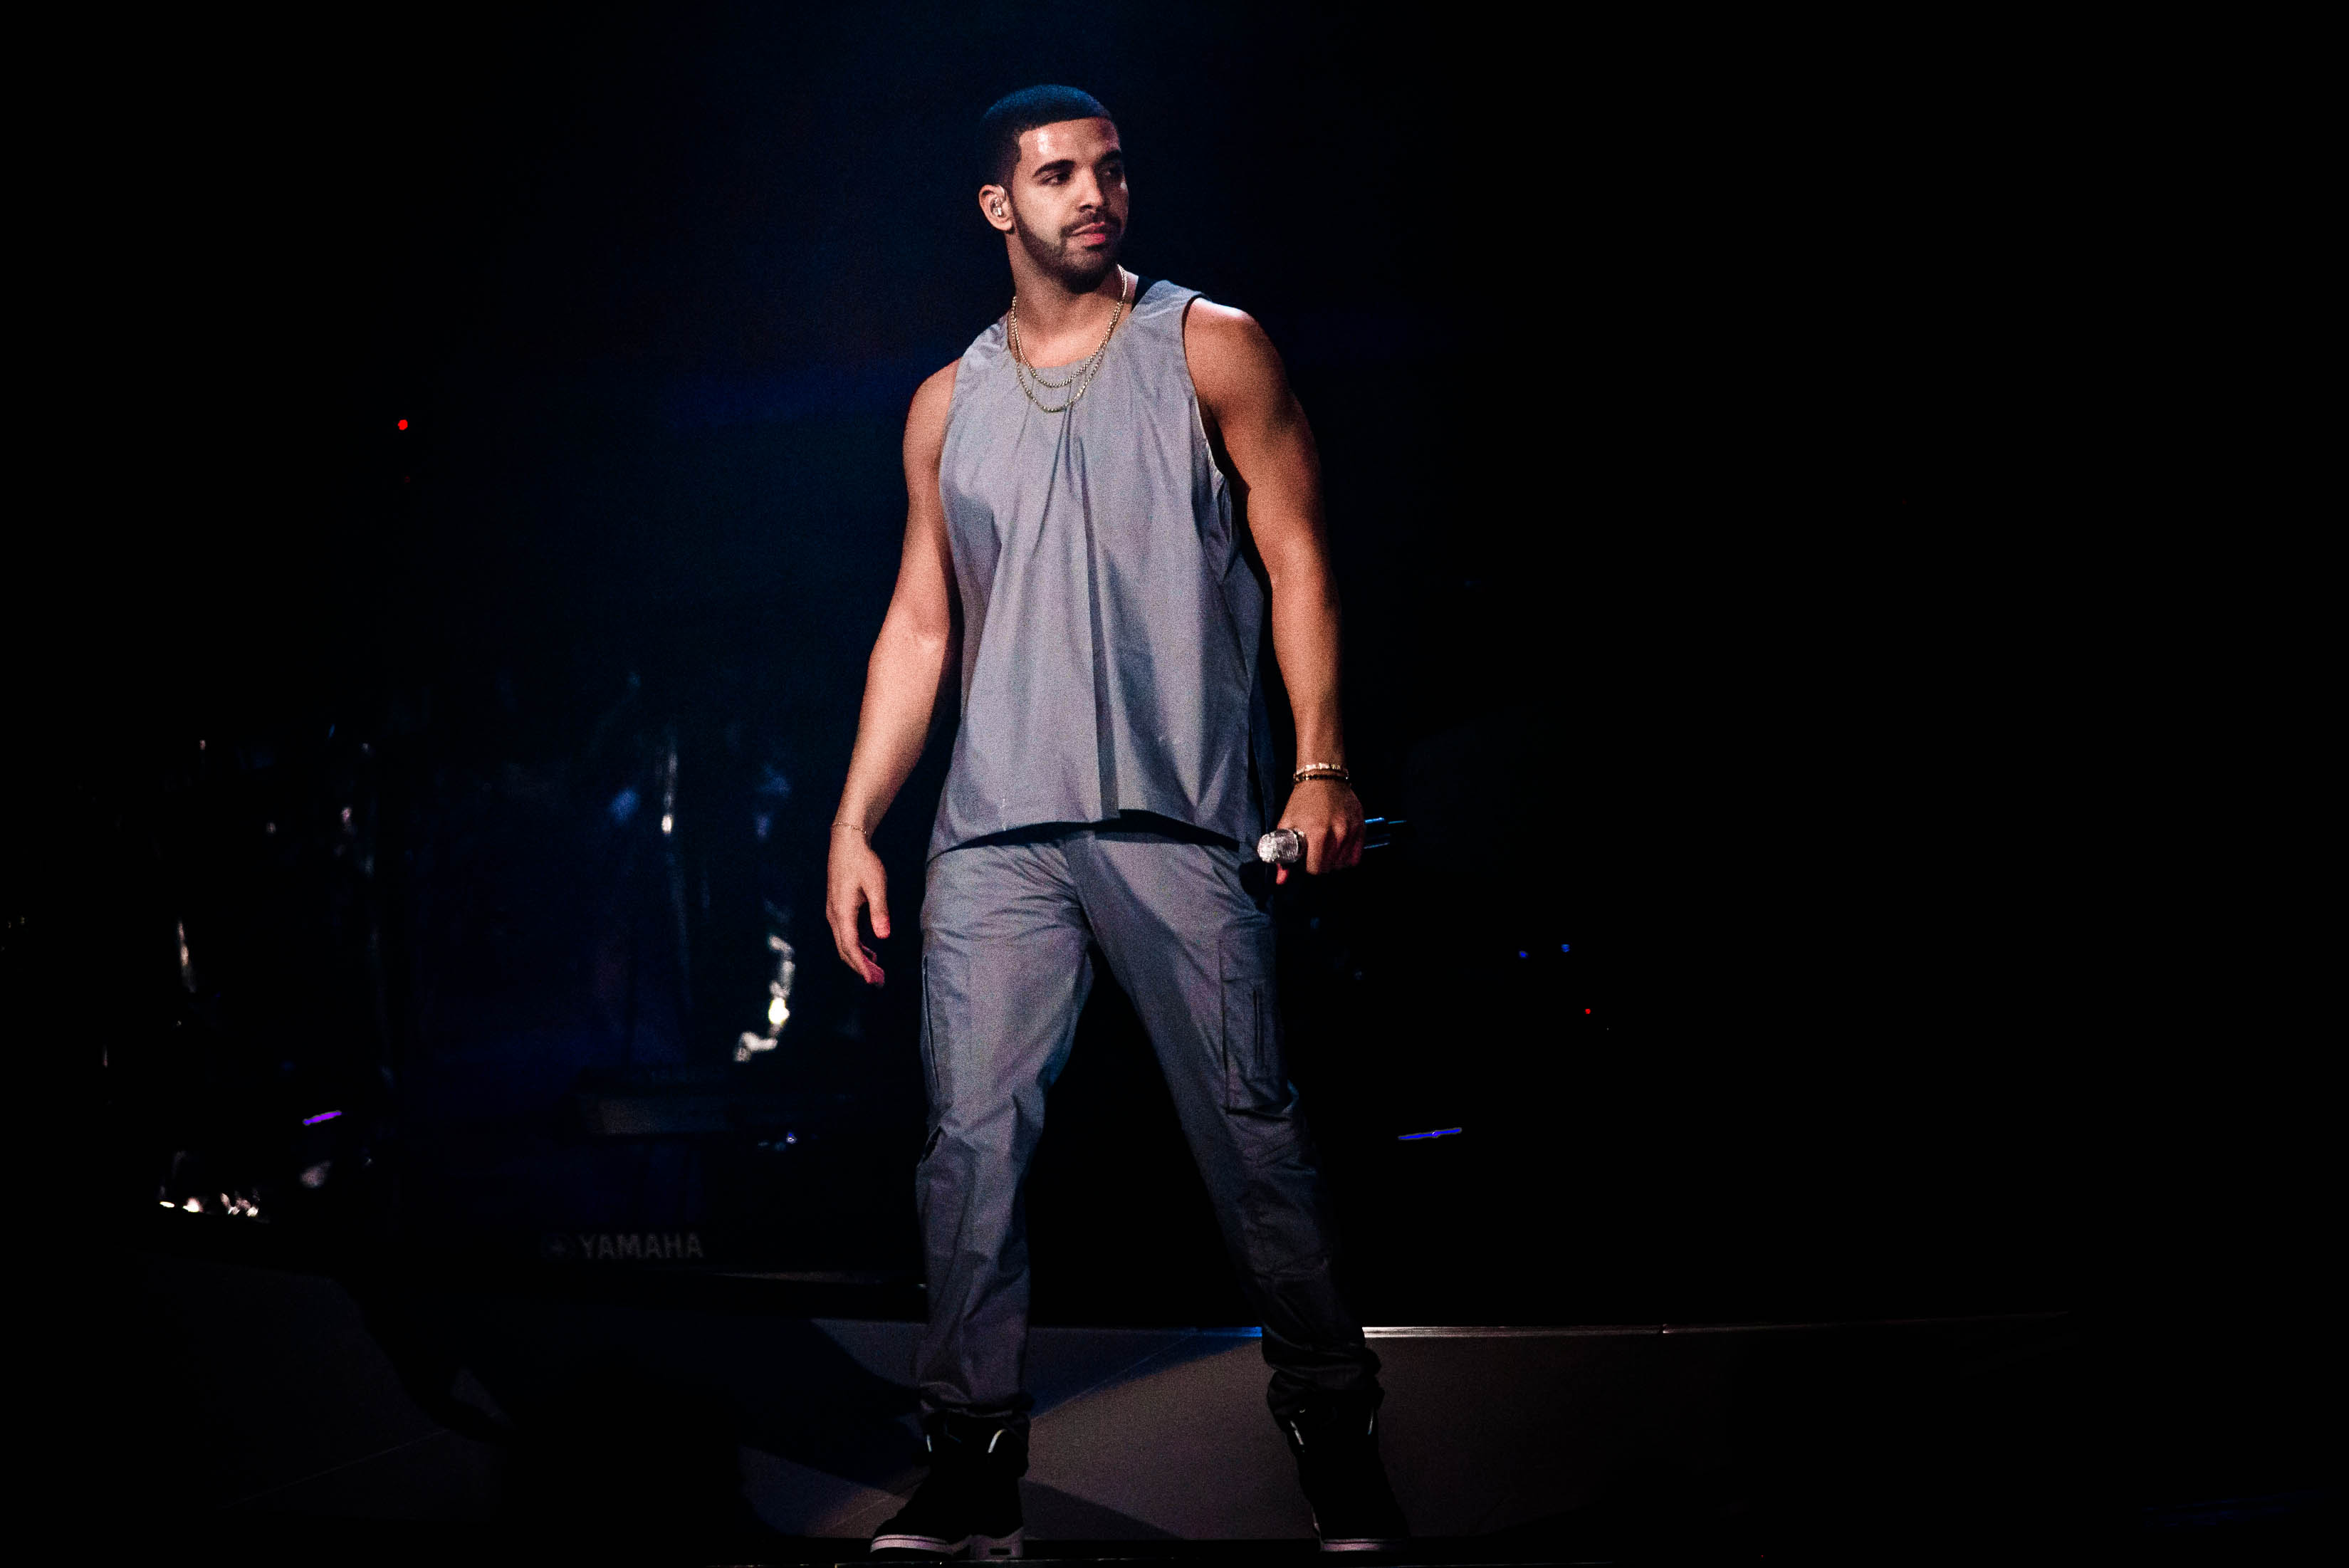 drake wallpaper background hd 63197